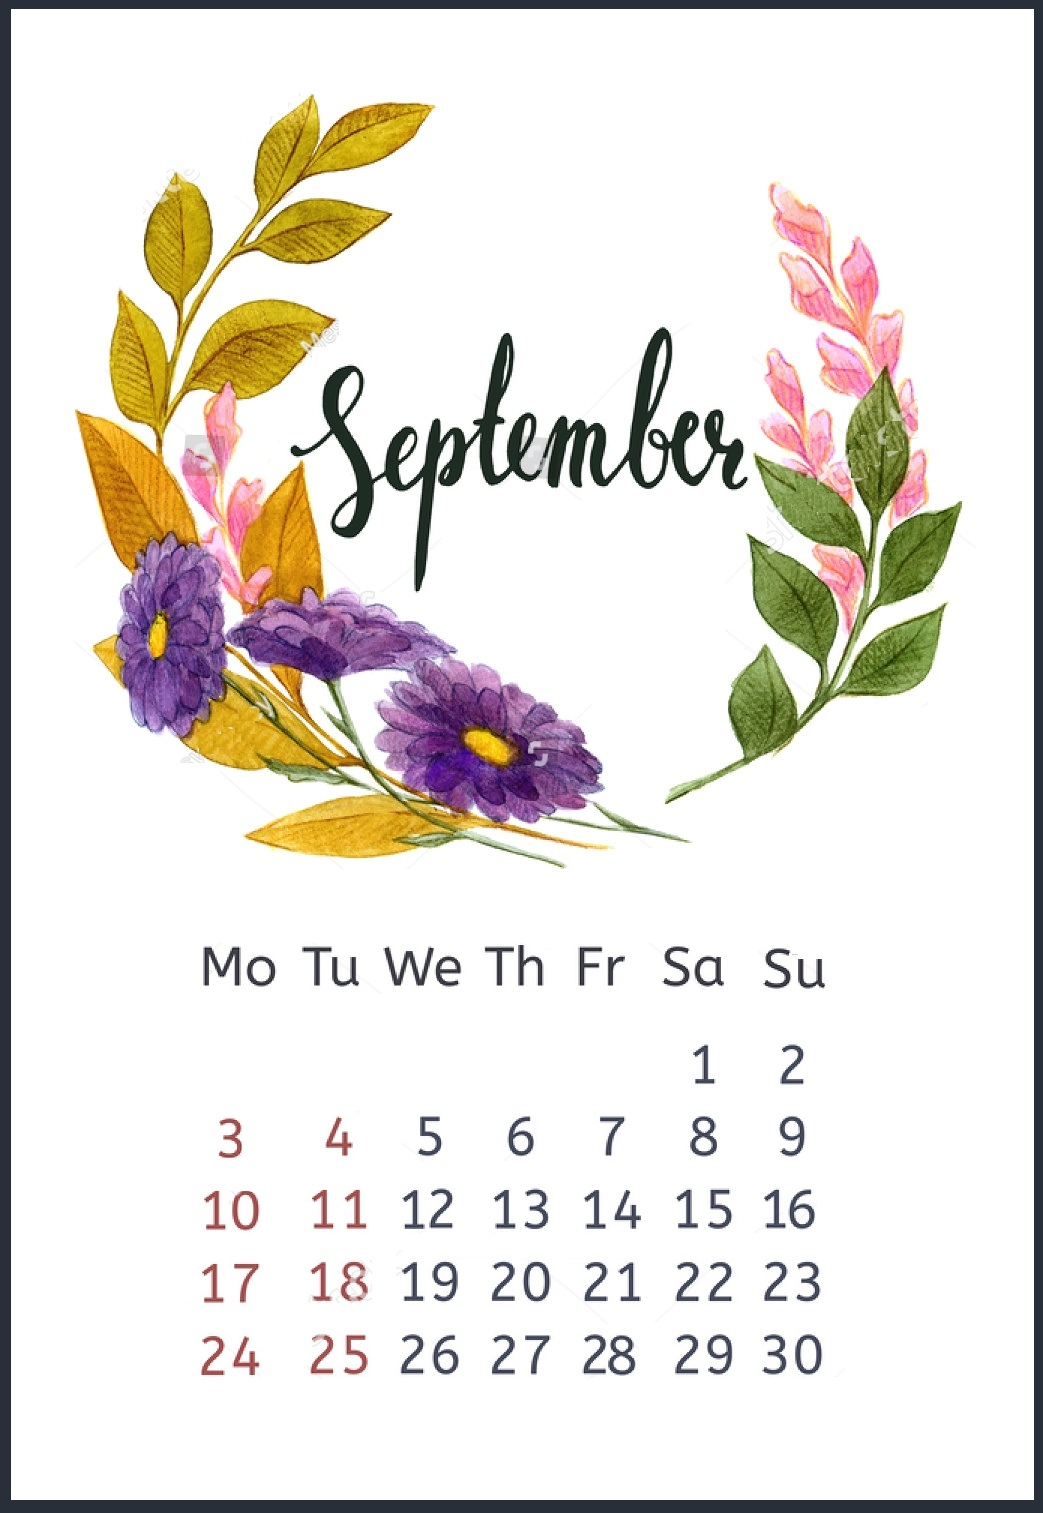 september 2018 calendar wallpapers calendar 2019::September 2019 iPhone Wallpaper Calendar